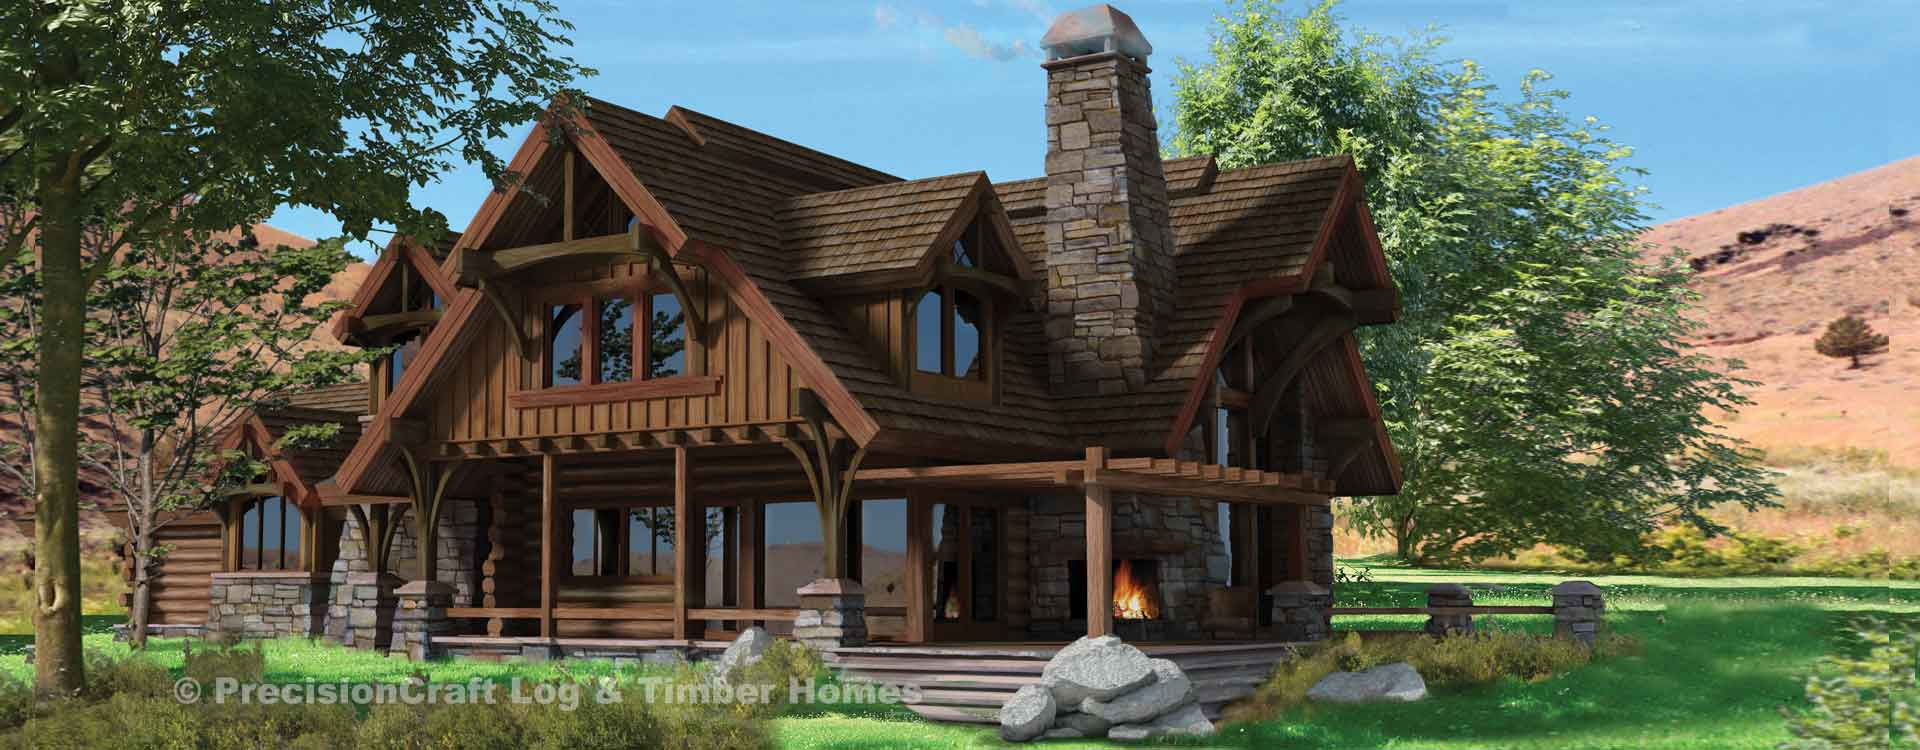 Flat Iron Chalet Log Home Rendering